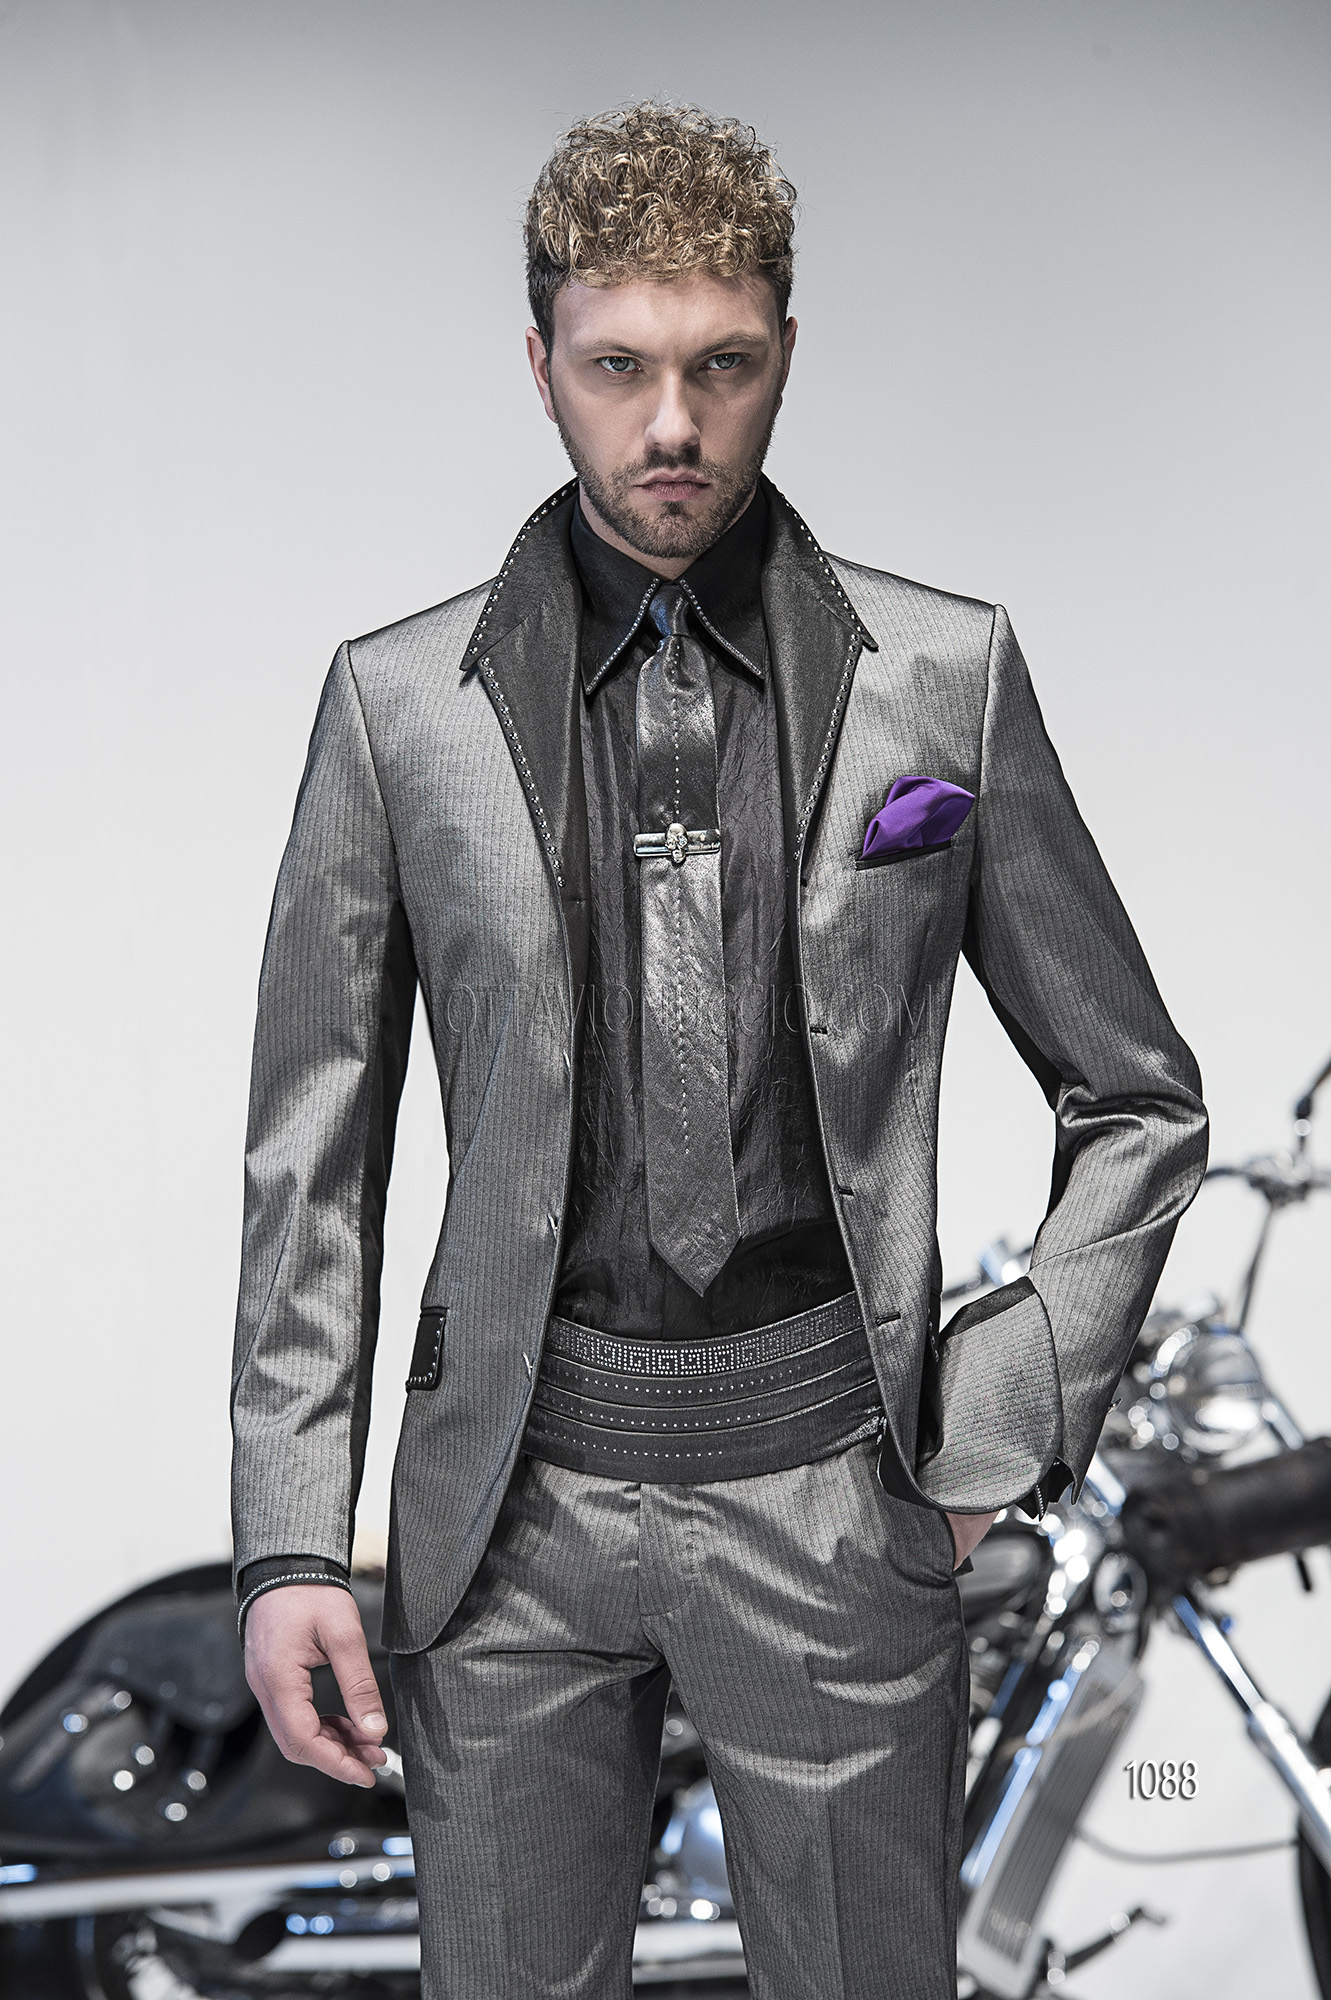 Metal Suit z Suits in Metallic Grey